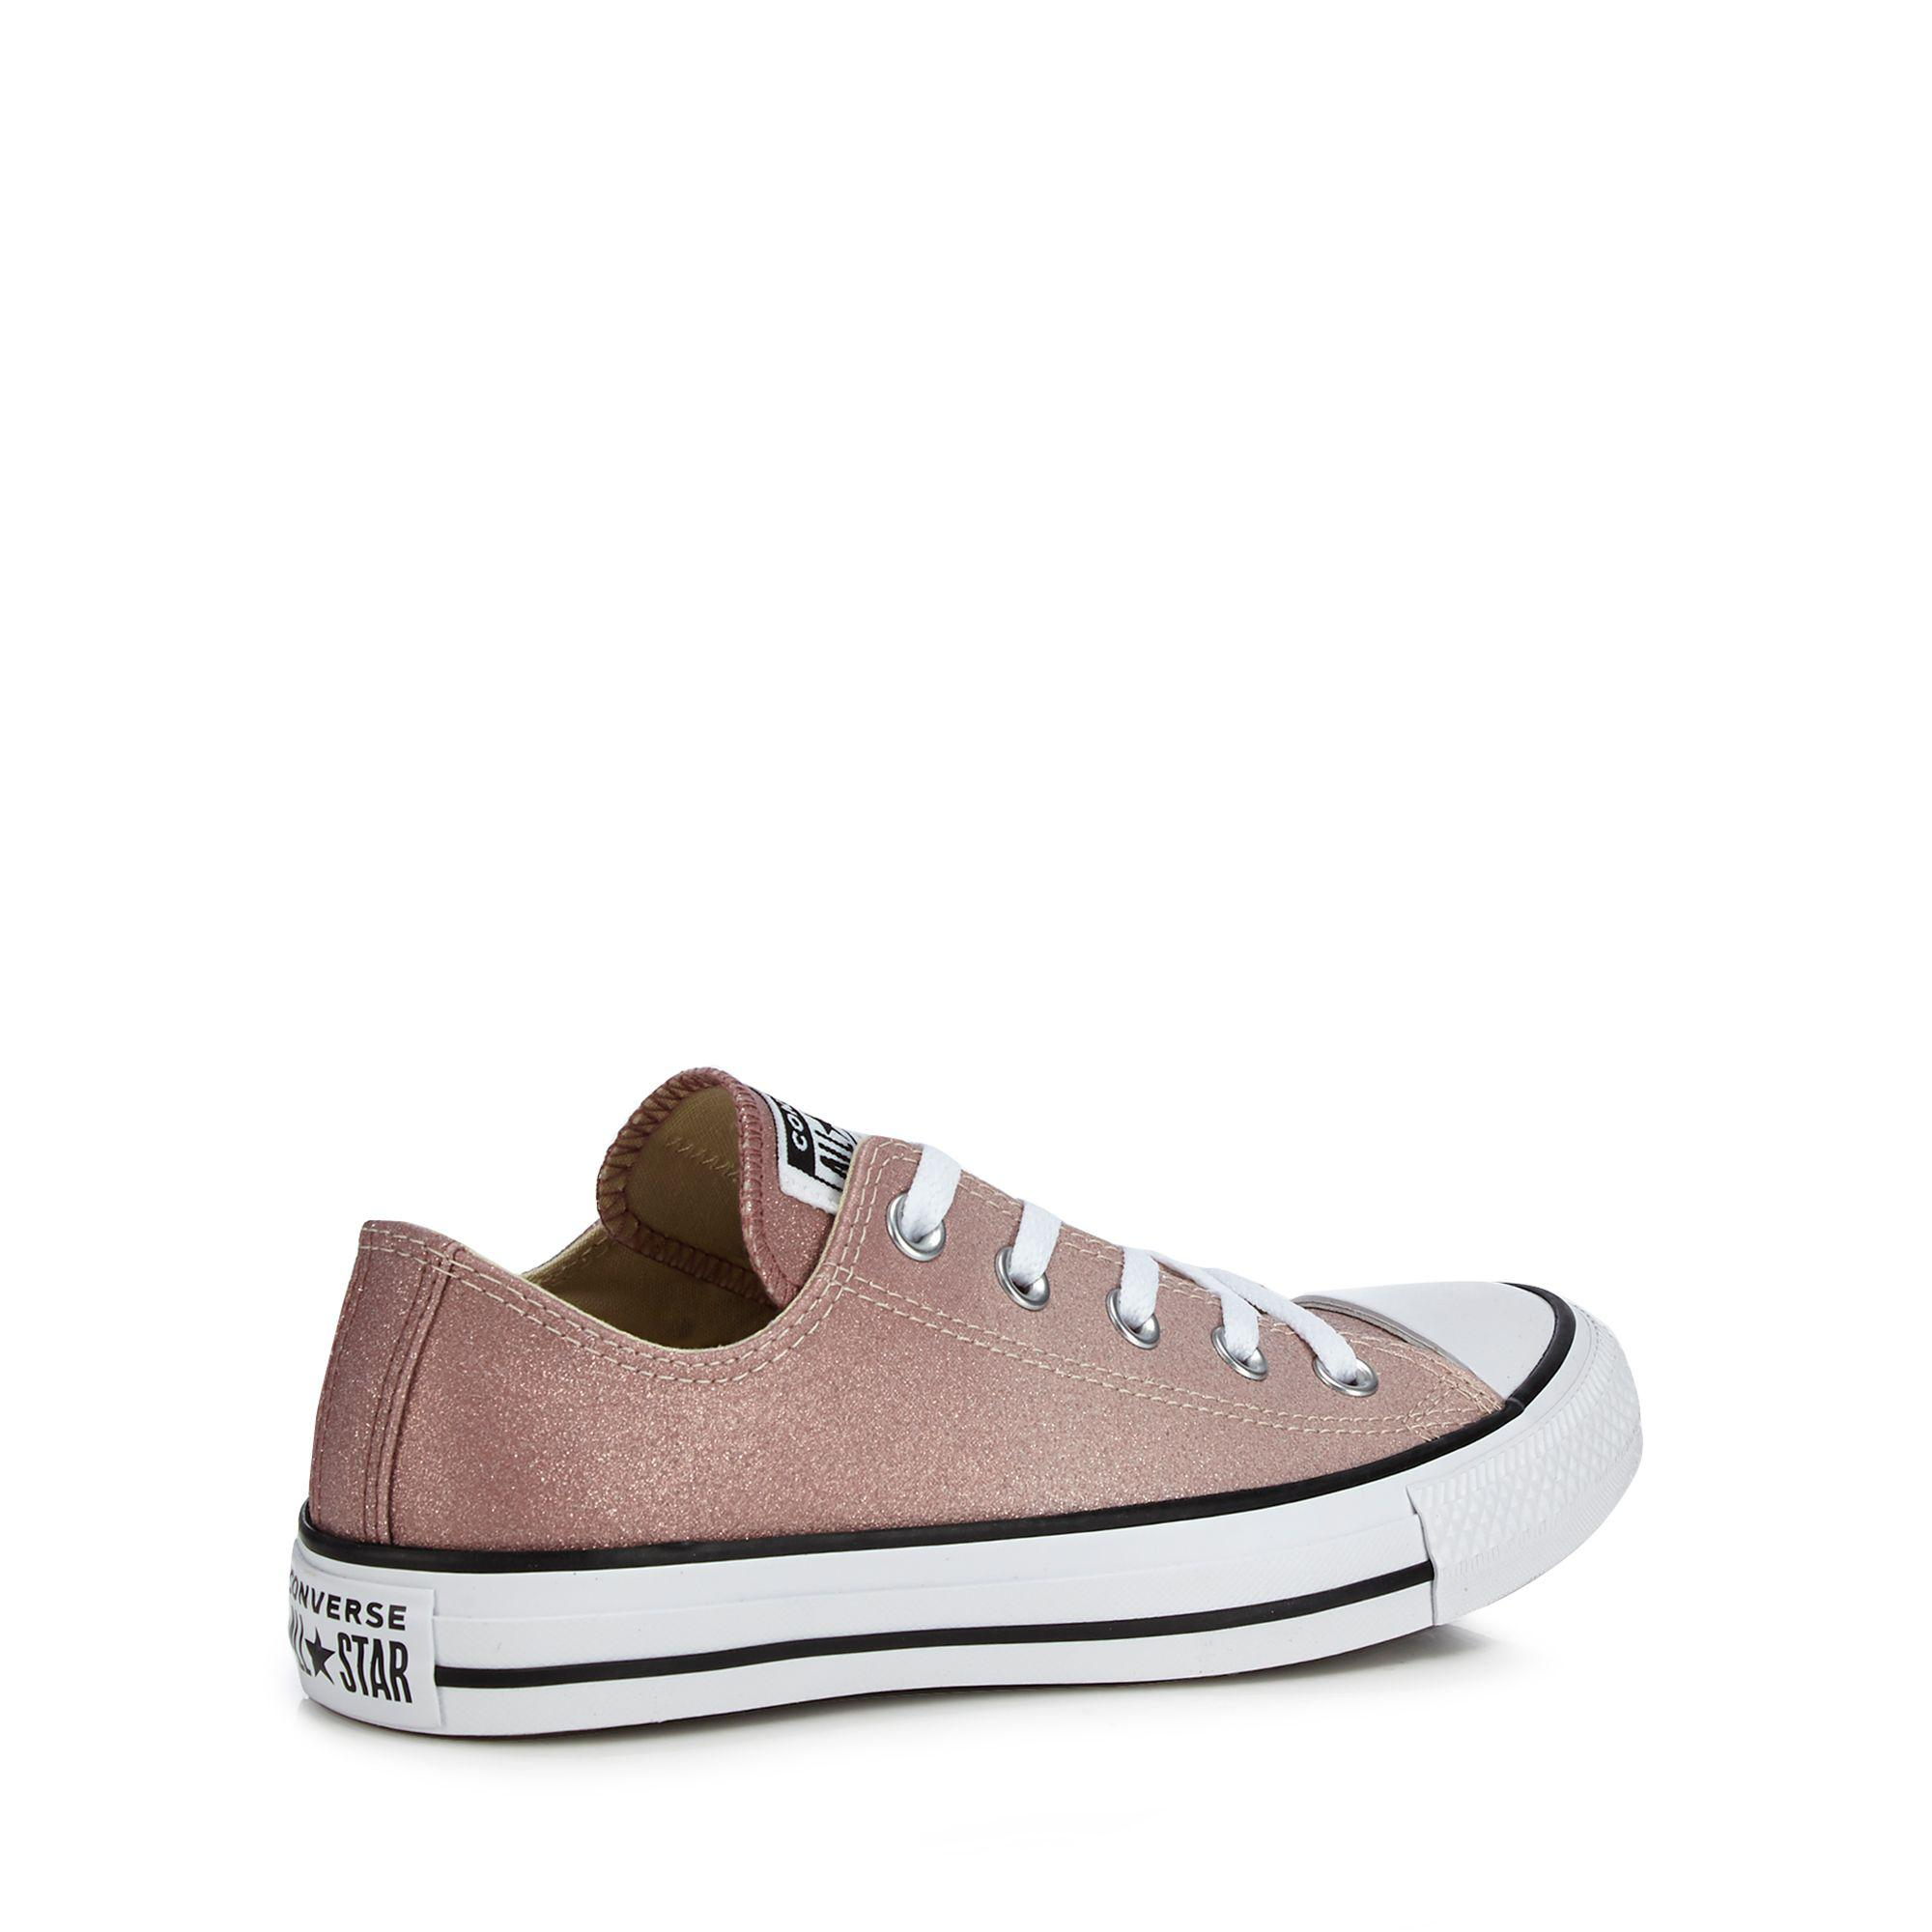 8e28017baed7 Converse - Gray Pink Glitter  all Star Ox  Trainers - Lyst. View fullscreen